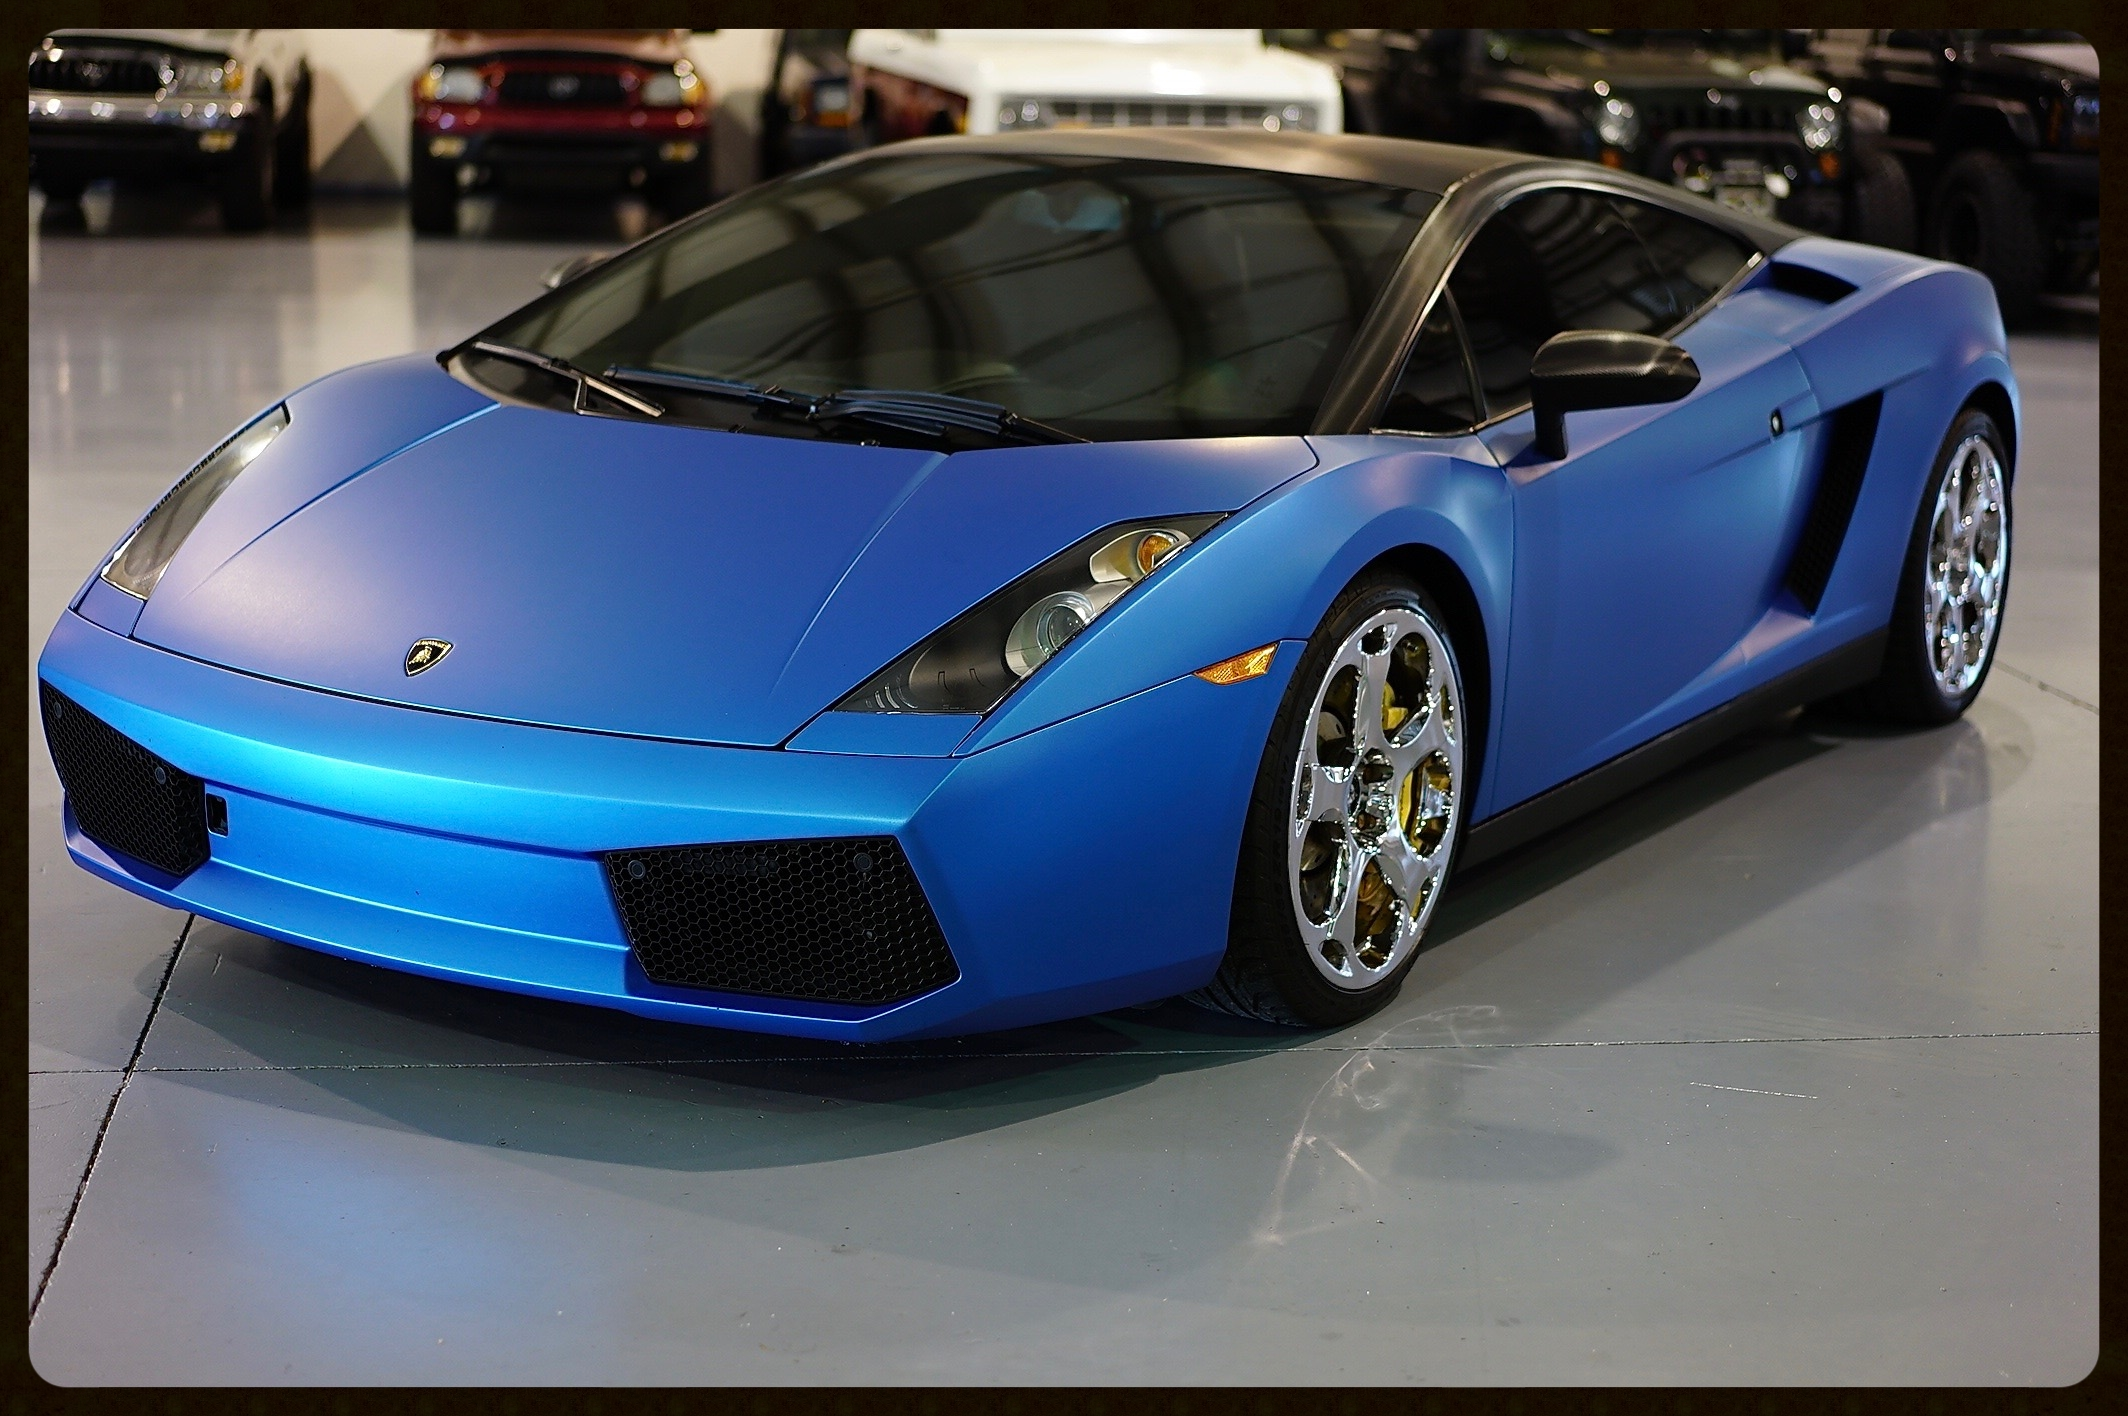 2007 Lamborghini Gallardo...We Just Installed a New Clutch, Flyhwheel, Spark Plugs, Oil Change and Filter. Matte Blue Frozen Wrap & More. $114,900